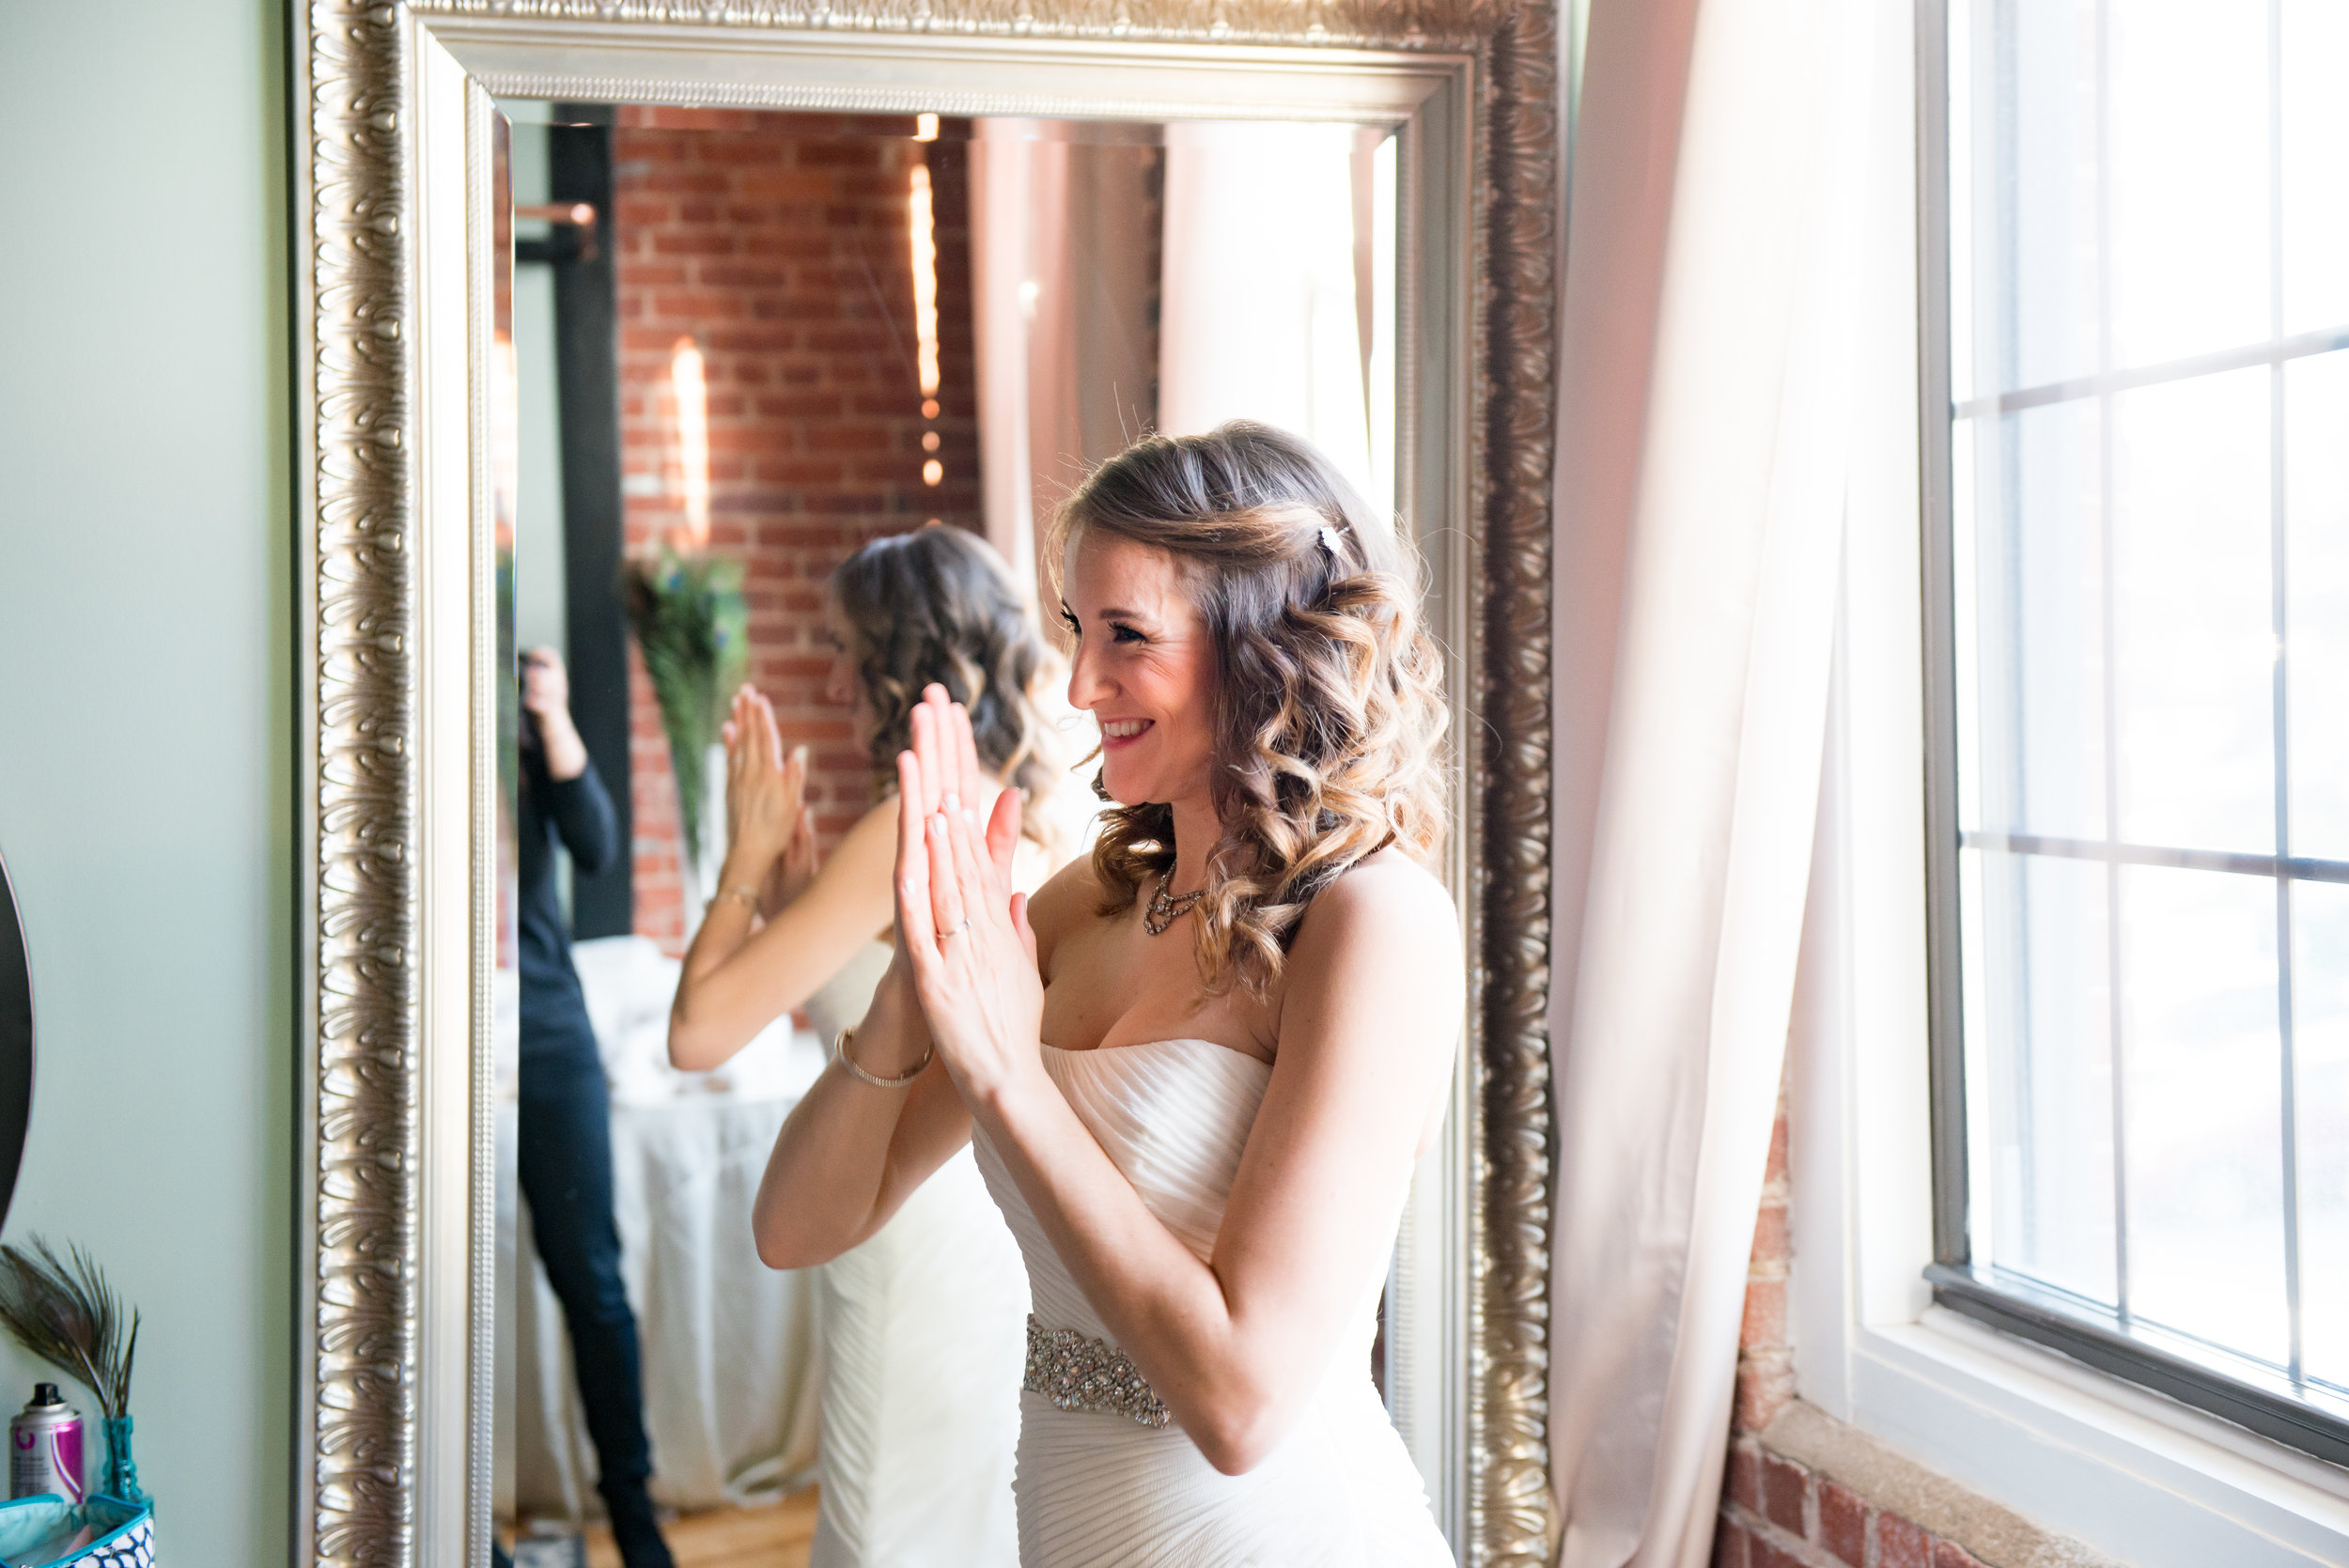 LUV LENS_WEDDING_EMILY AND ANDREW-144.jpg